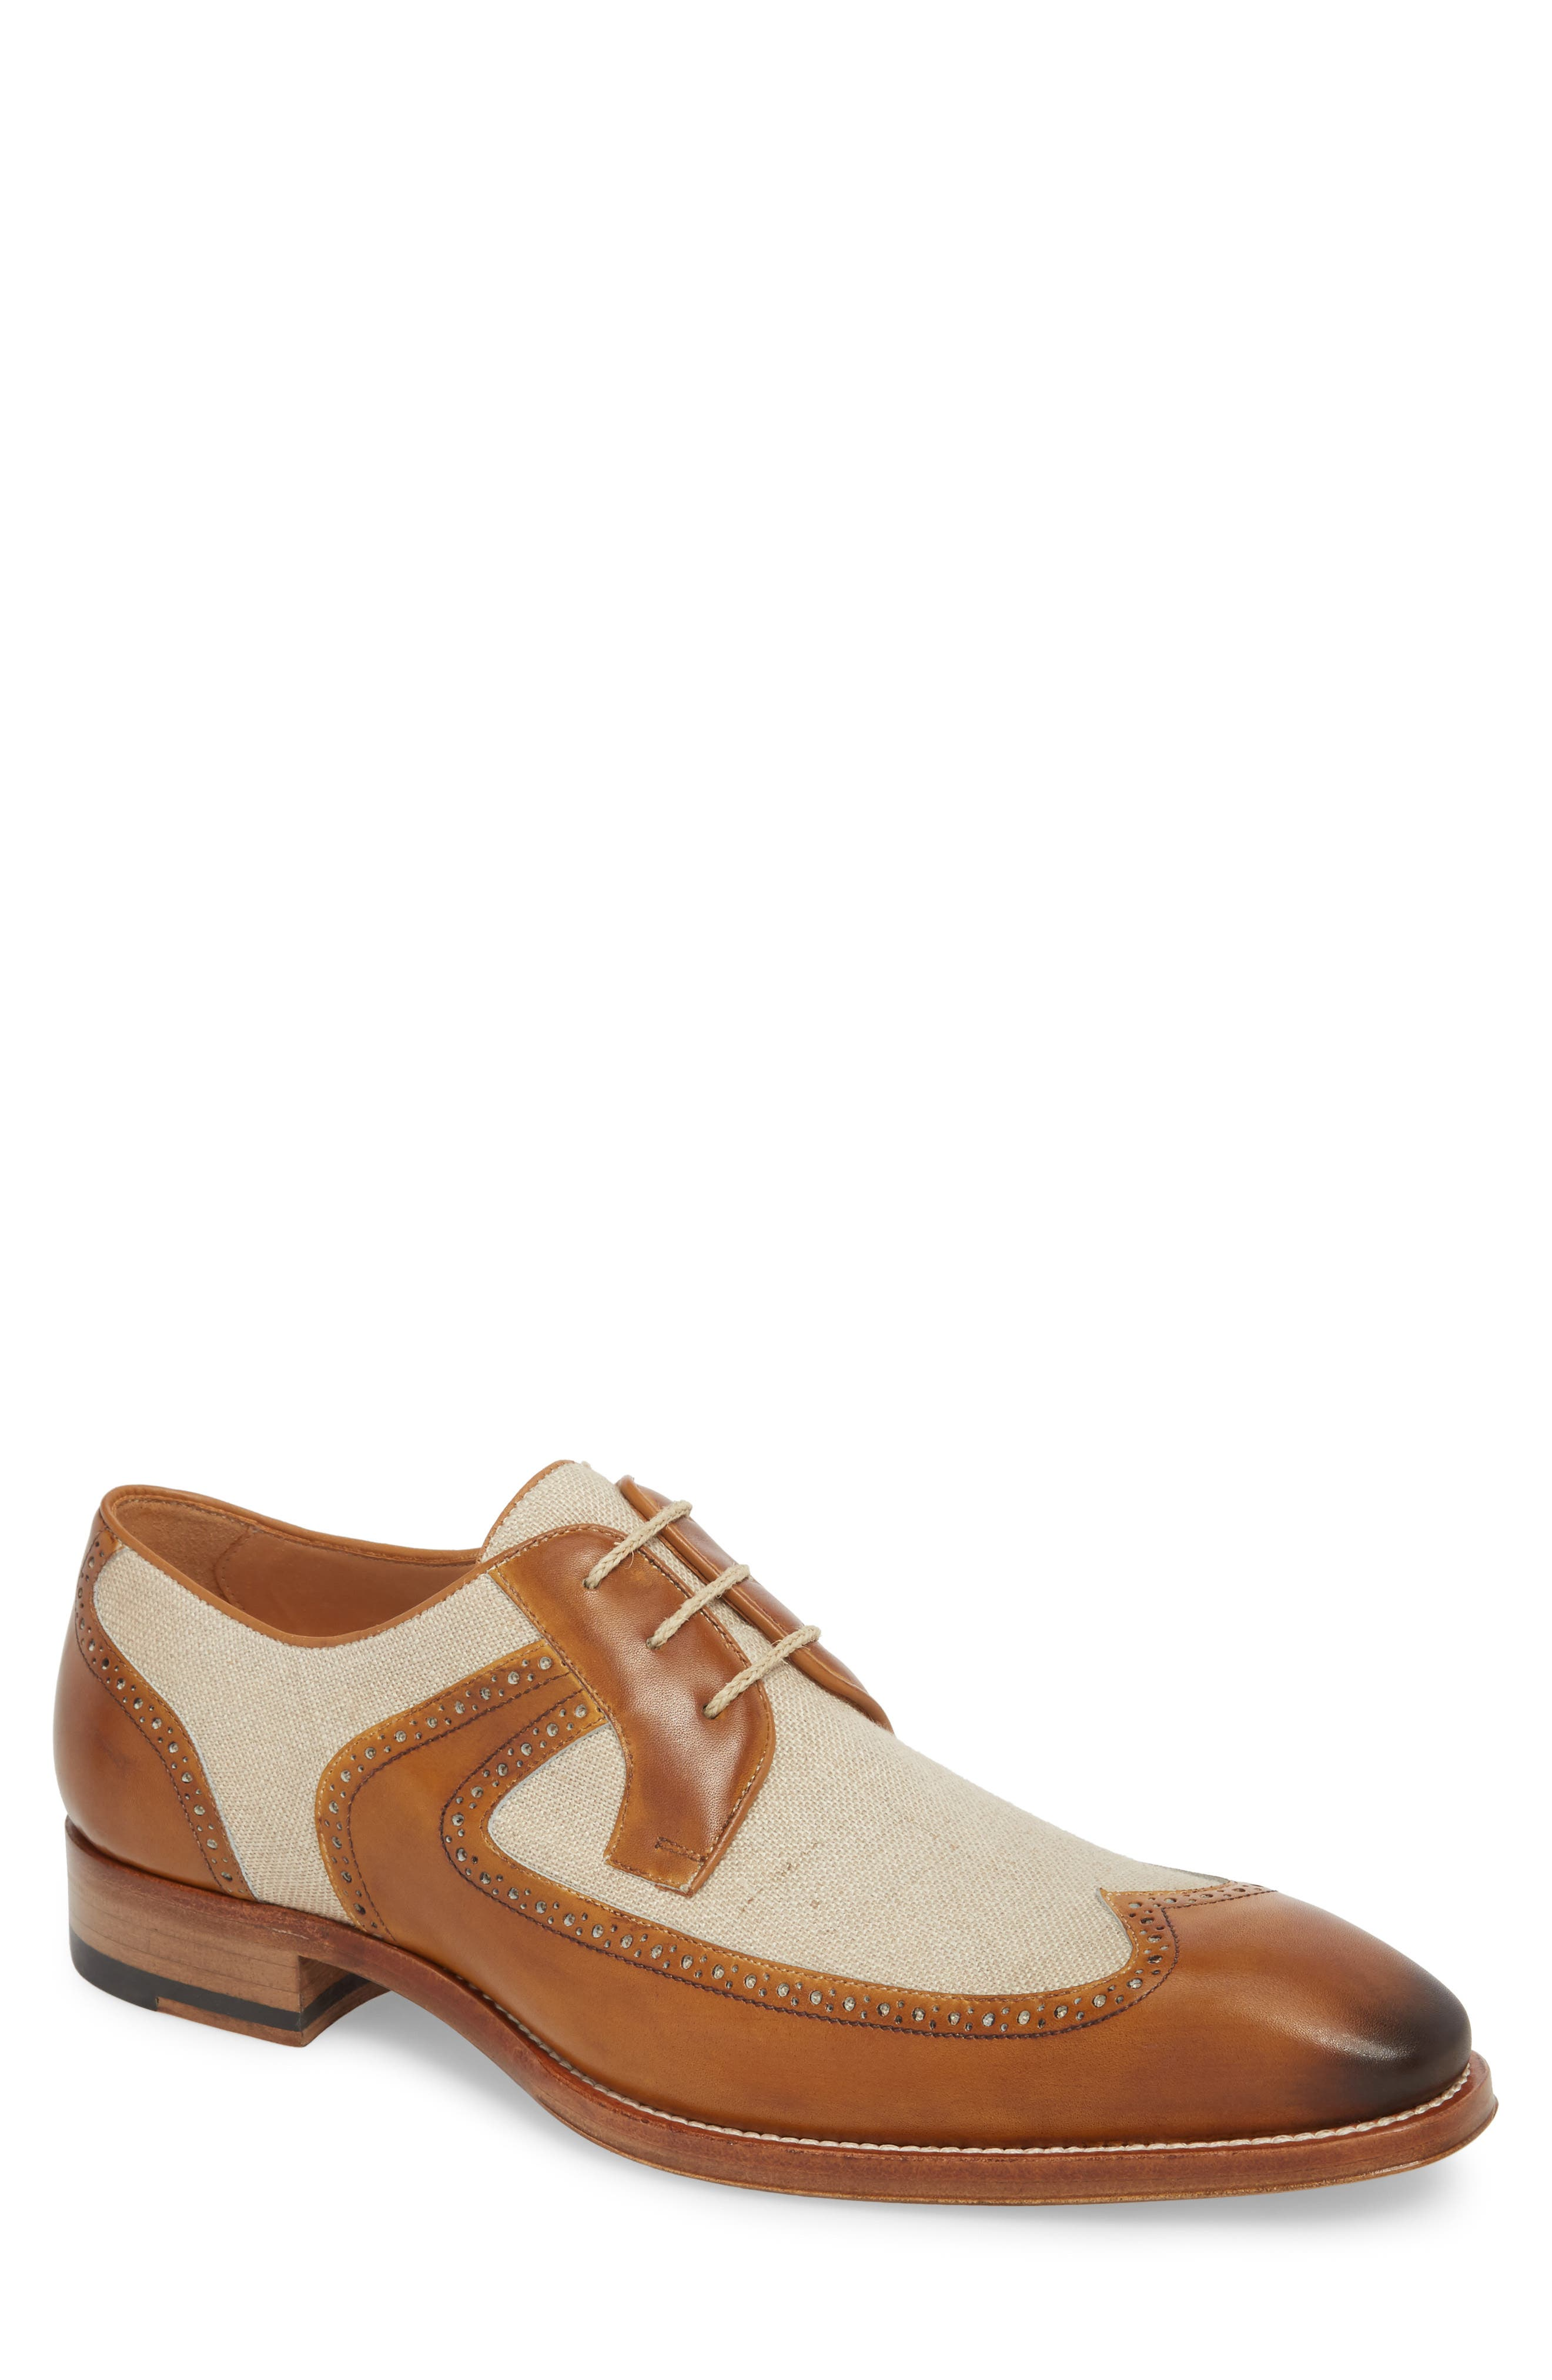 Teseo Spectator Wingtip Derby,                             Main thumbnail 1, color,                             Honey/ Bone Leather